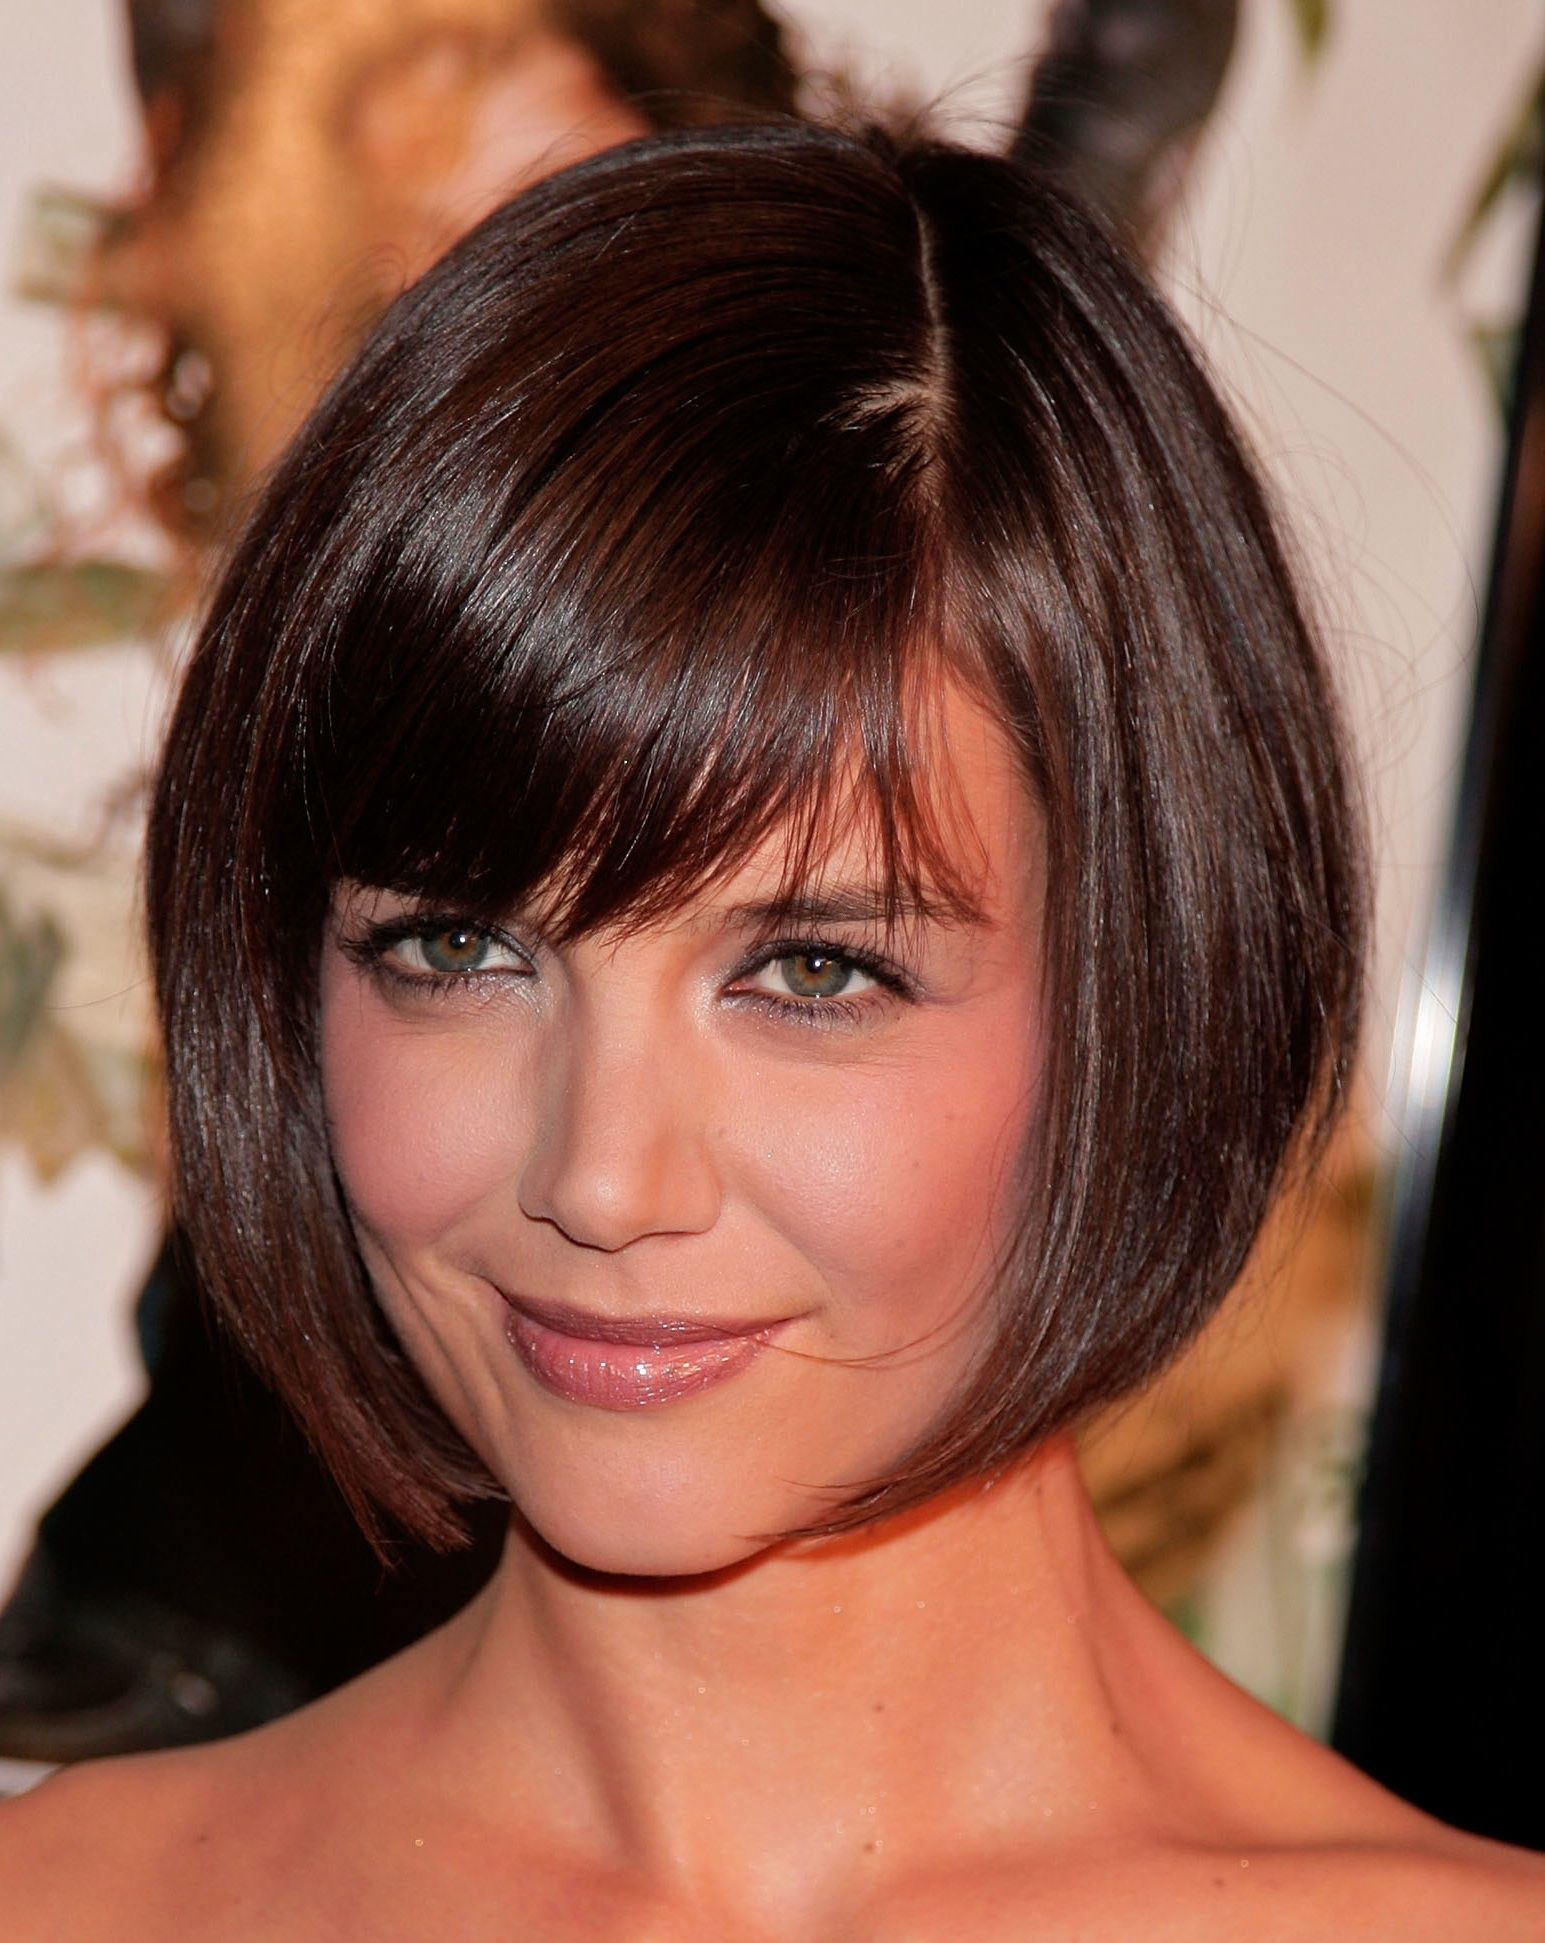 Katie Holmes Hairstyles Brilliant Katie Holmes Photo Galleries Of Her Hair Over The Years  Side